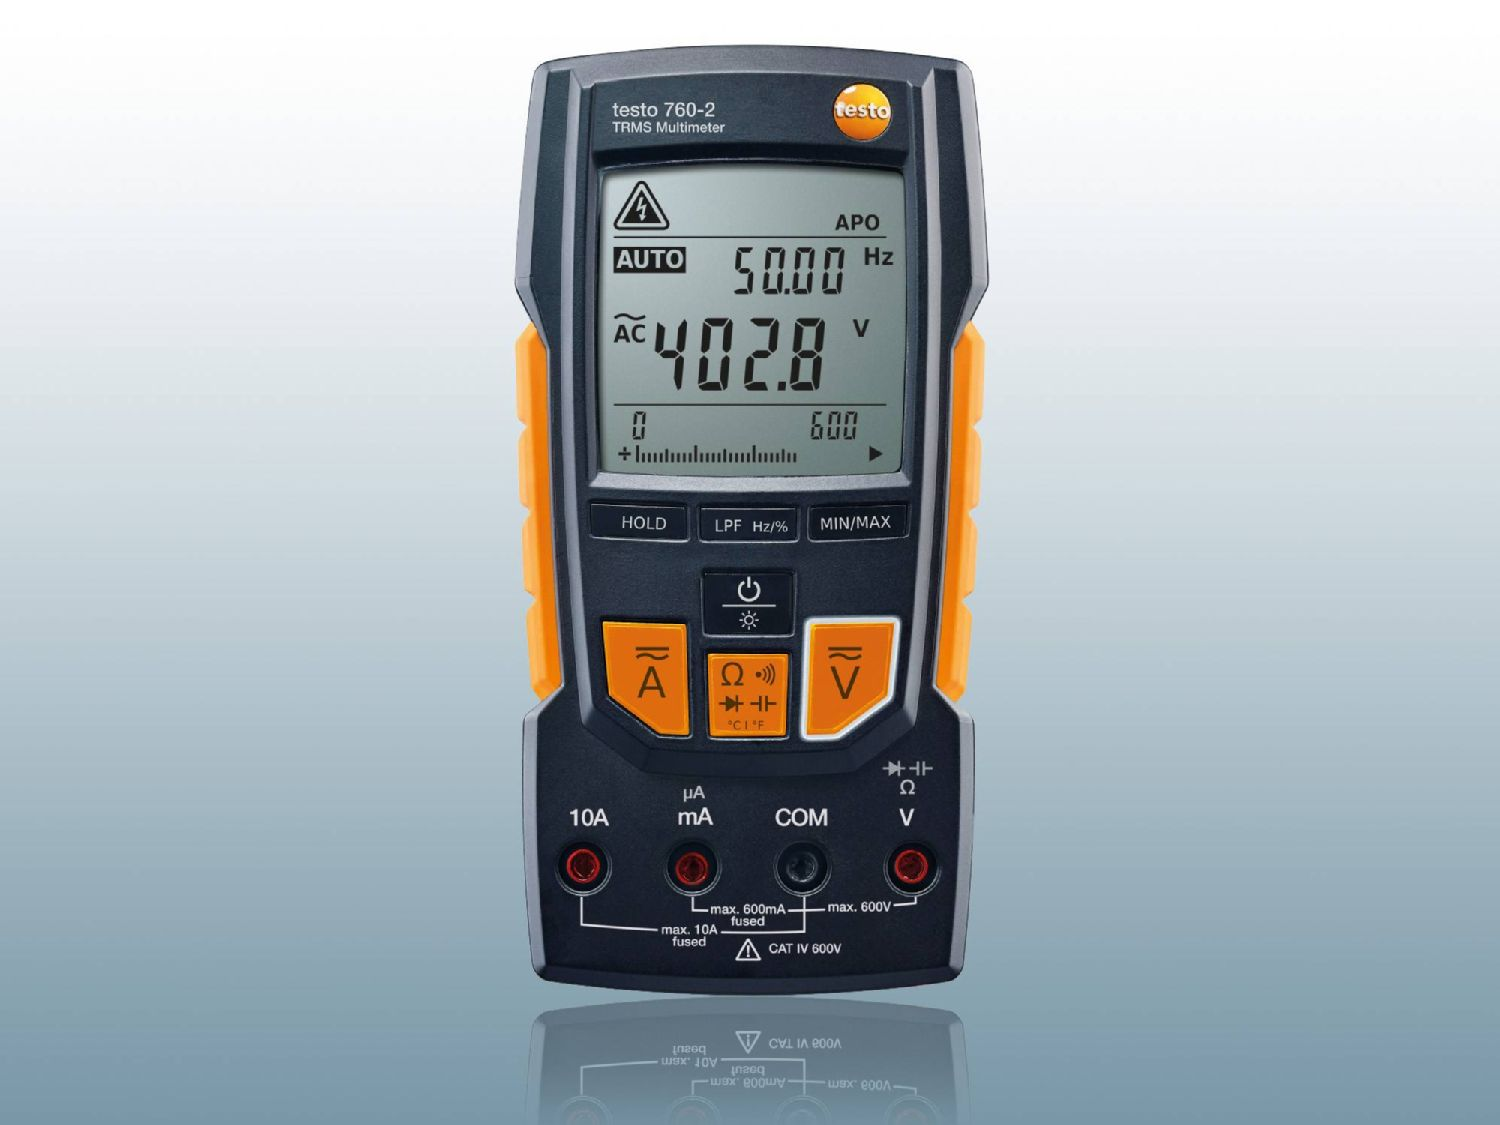 Digitalni multimeter  testo 760-2